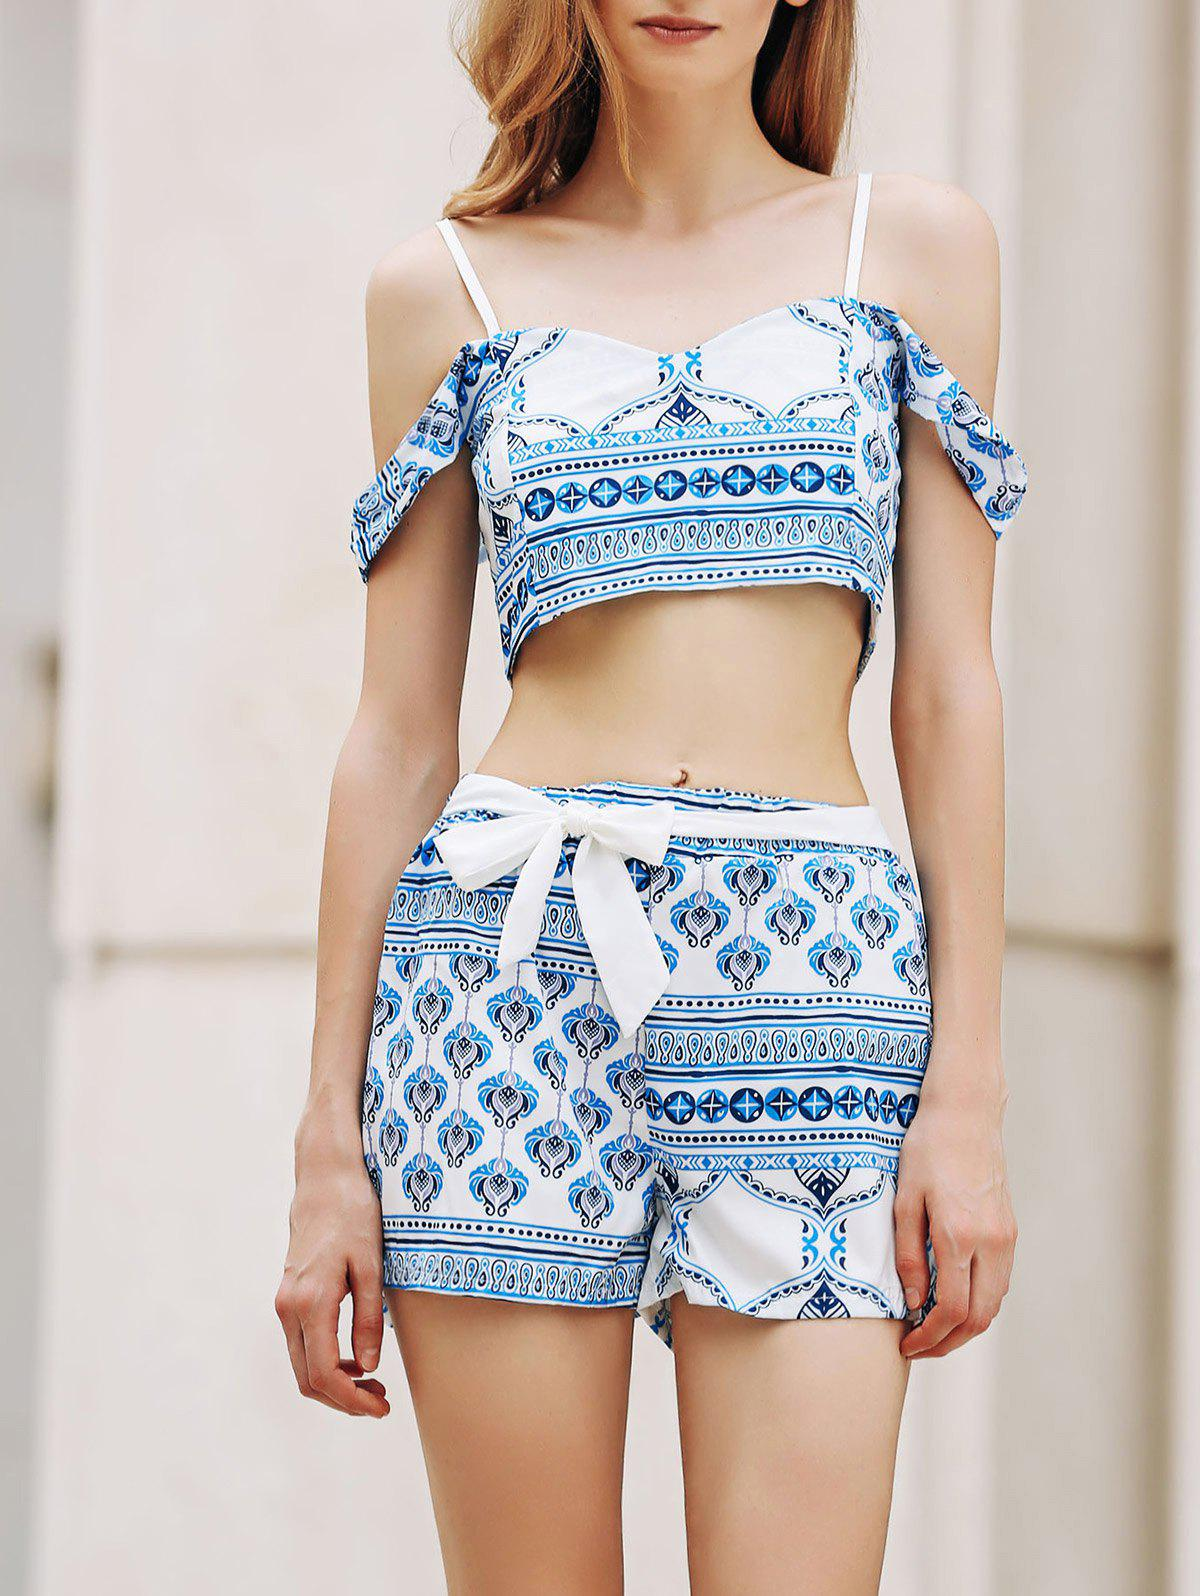 Trendy Spaghetti Straps Crop Top and Printed Shorts Twinset For Women - BLUE/WHITE XL